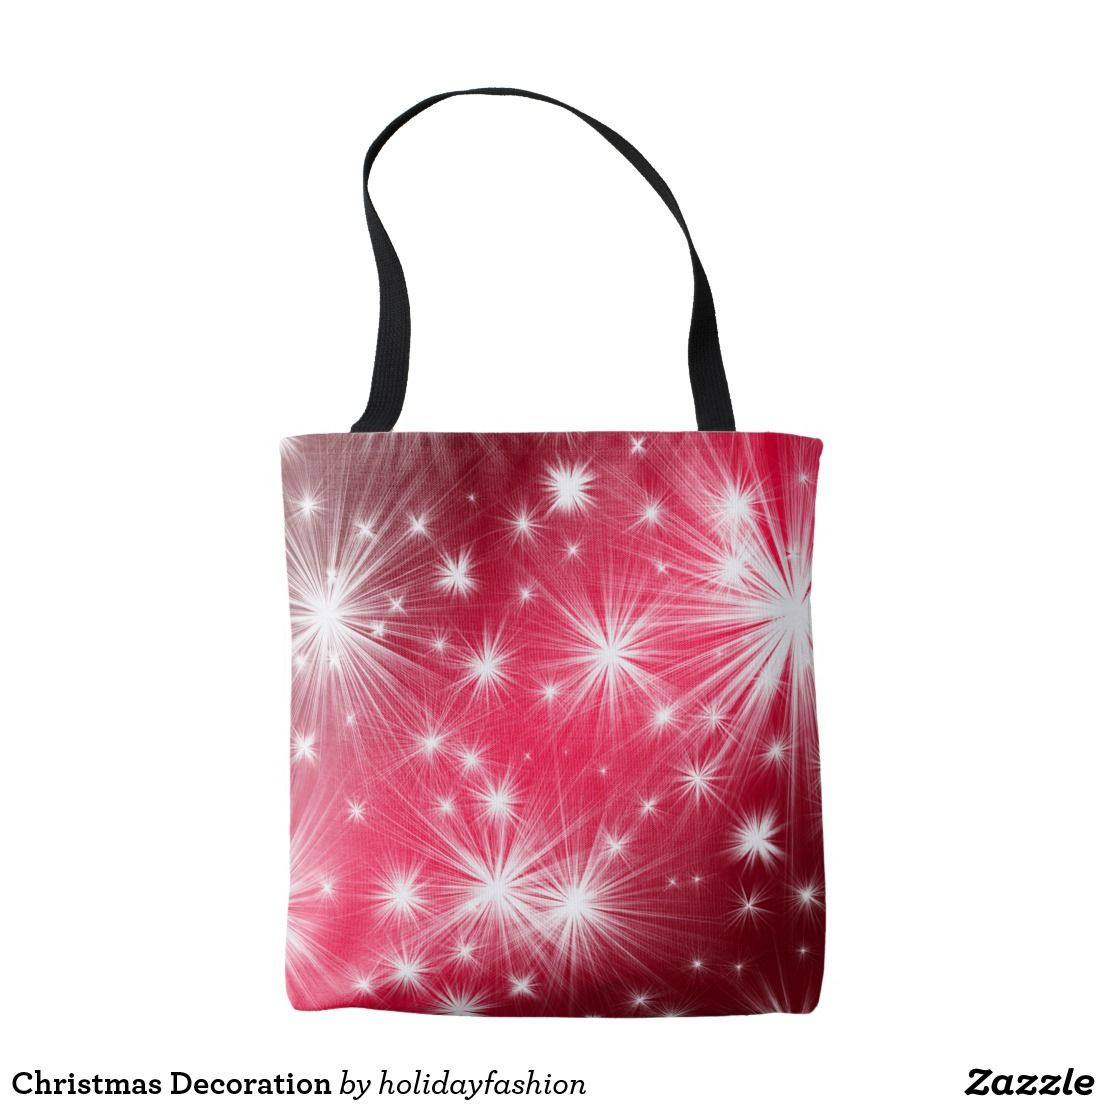 Wedding decorations and ideas december 2018 Christmas Decoration Tote Bag  Christmas gift ideaus